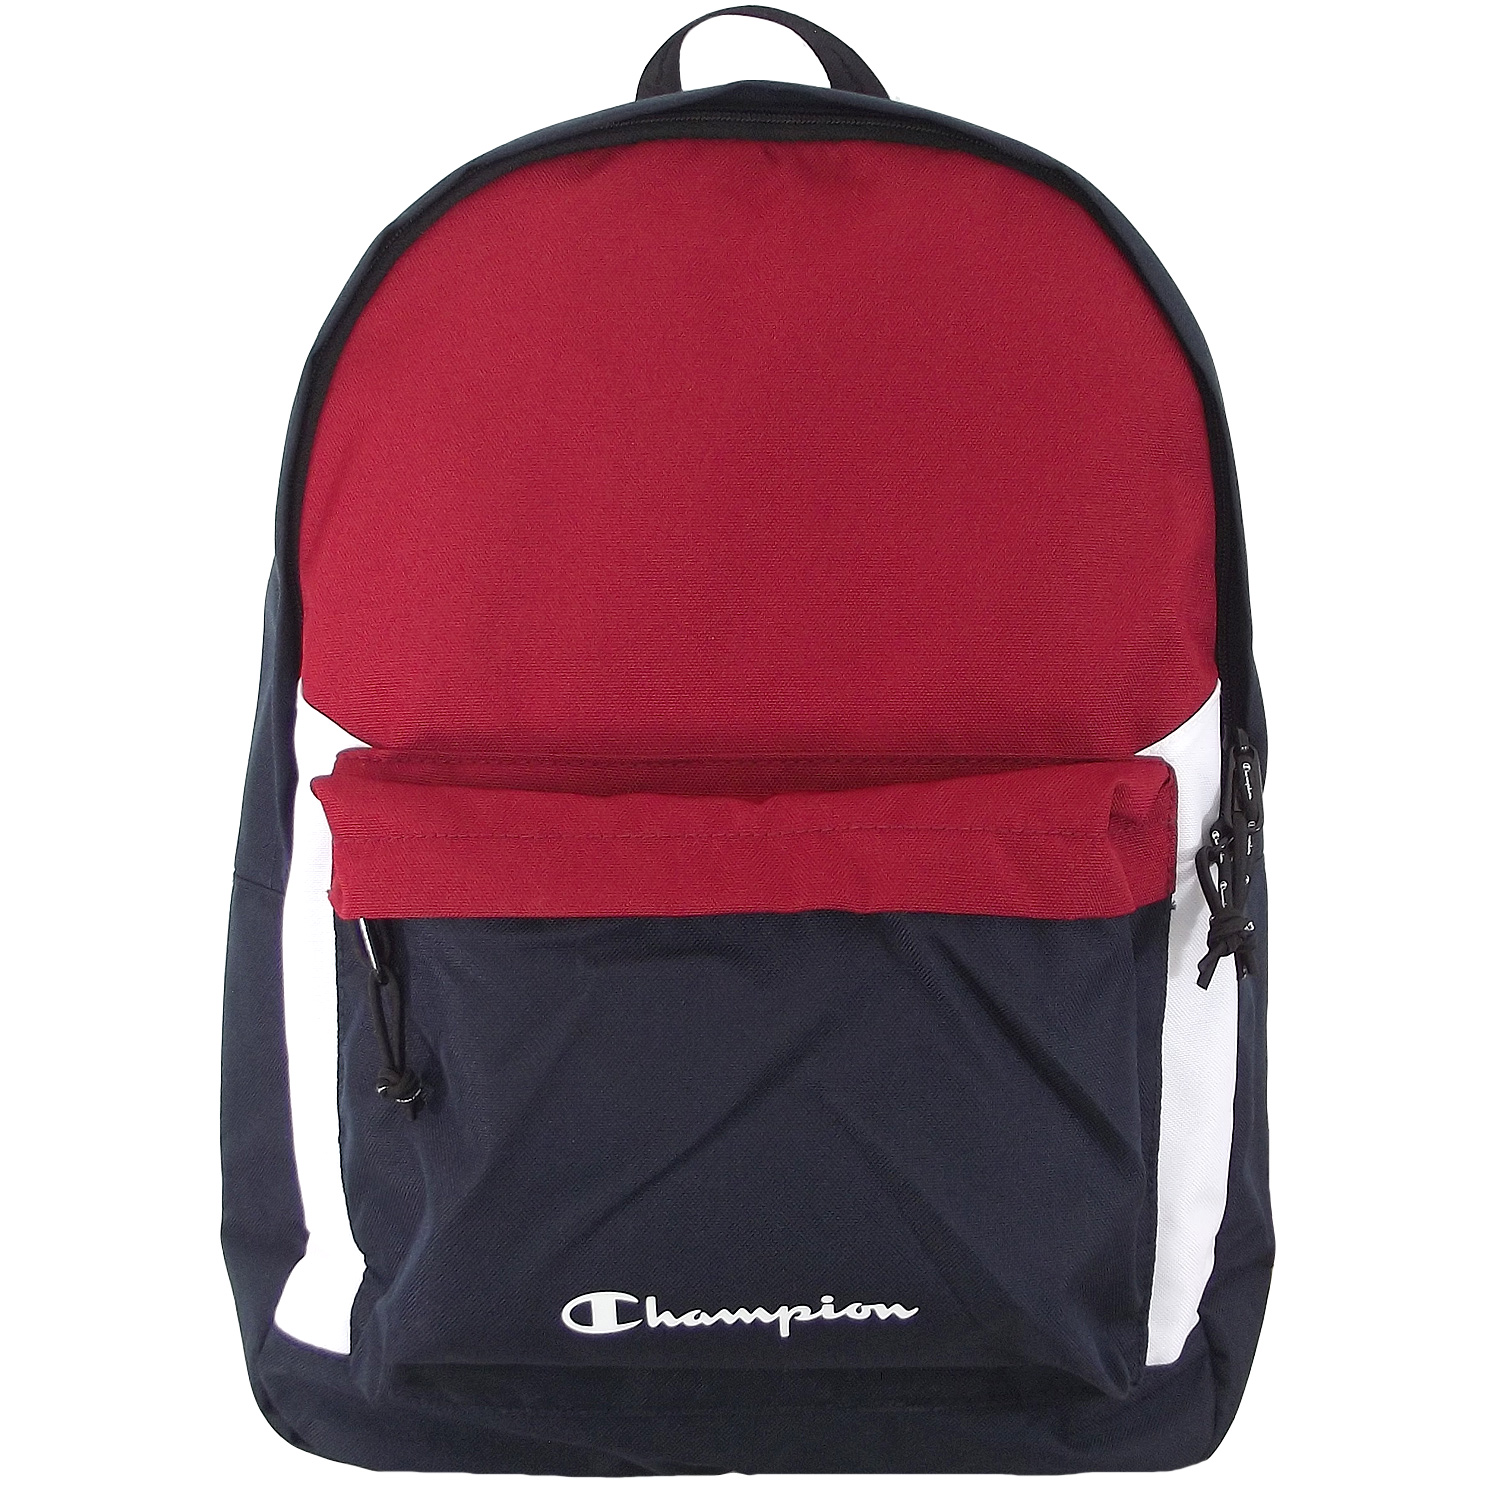 Champion Backpack 804882 Navy/Rot/Weiß (CMR)